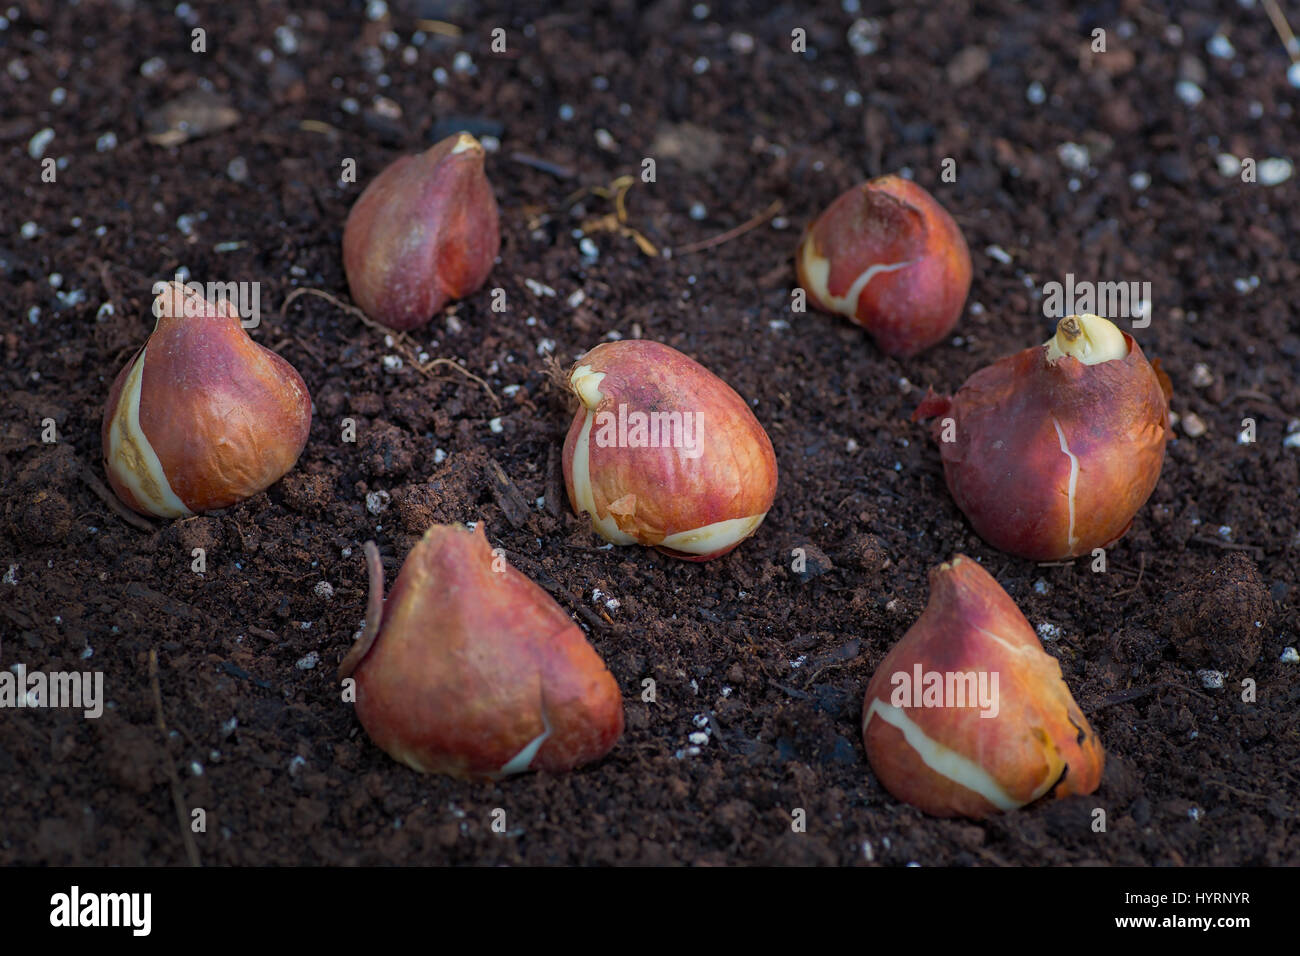 tulip bulb soil stockfotos tulip bulb soil bilder alamy. Black Bedroom Furniture Sets. Home Design Ideas